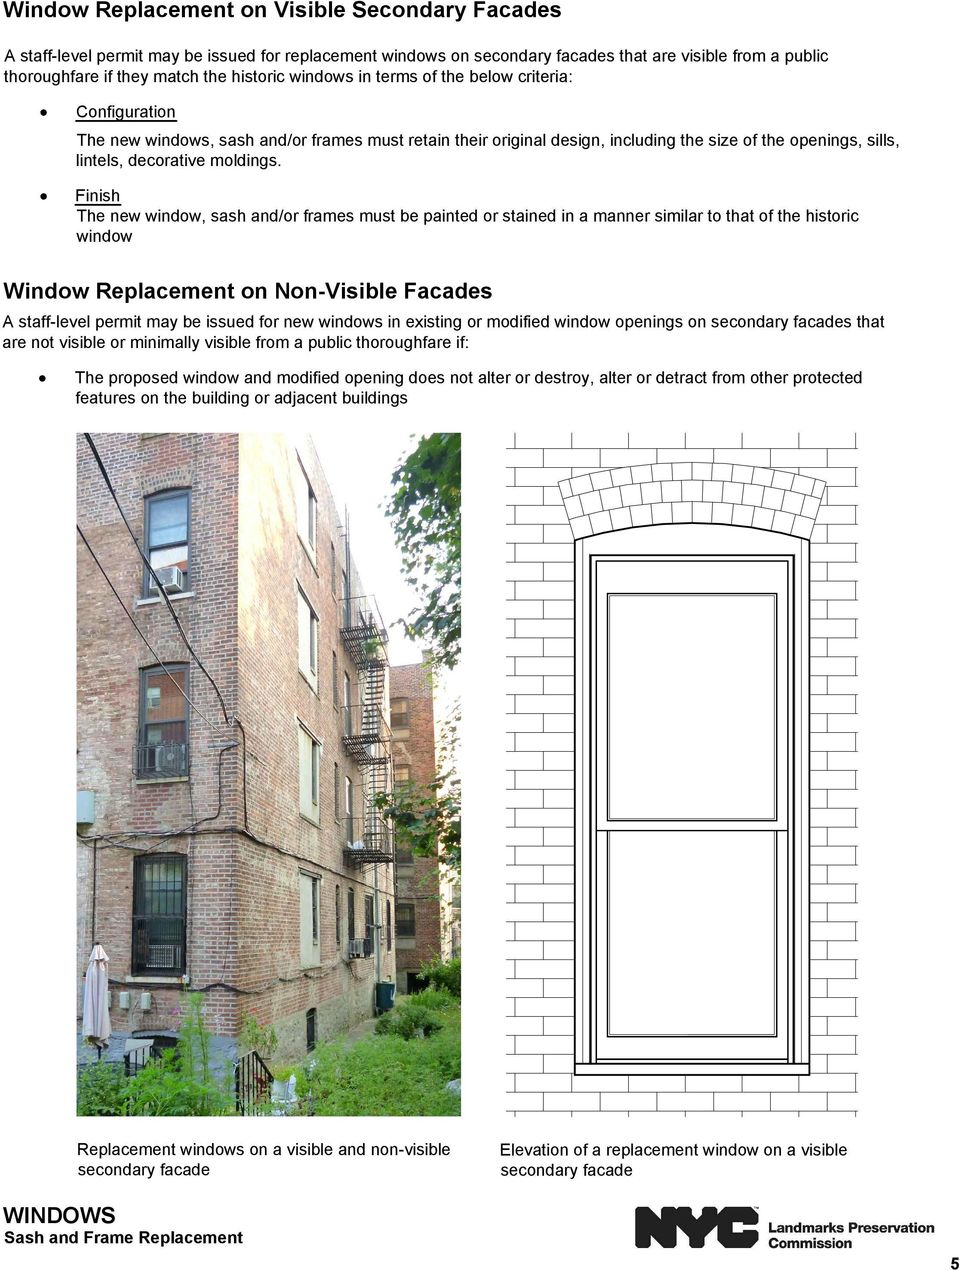 Finish The new window, sash and/or frames must be painted or stained in a manner similar to that of the historic window Window Replacement on Non-Visible Facades A staff-level permit may be issued